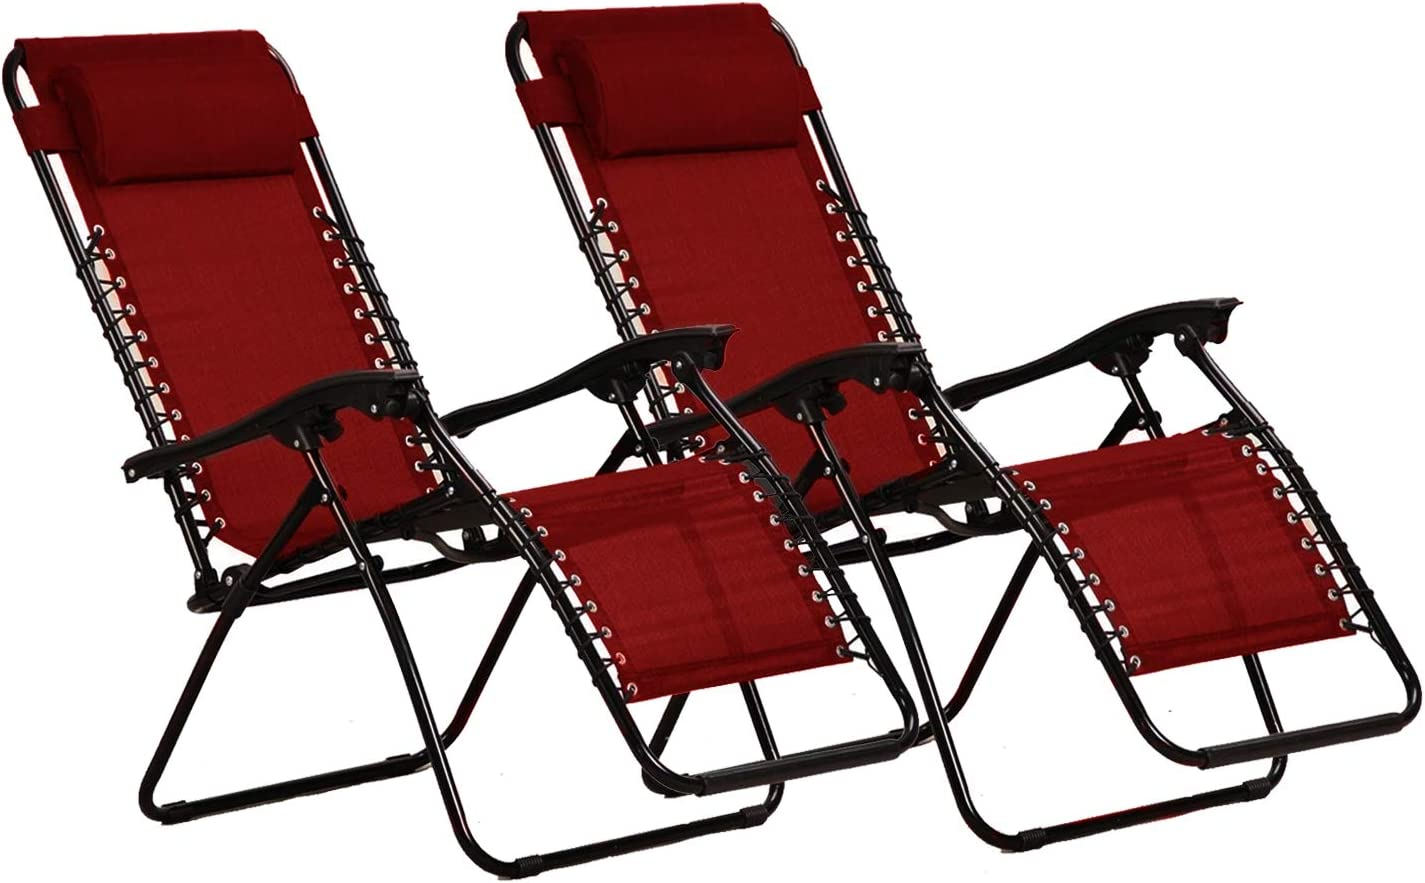 KEPLIN Set of 2 Heavy Duty Textoline Zero Gravity Chairs | Garden Outdoor Patio Sun Loungers | Folding Reclining Chairs | Lounger Deck Chairs (RED)